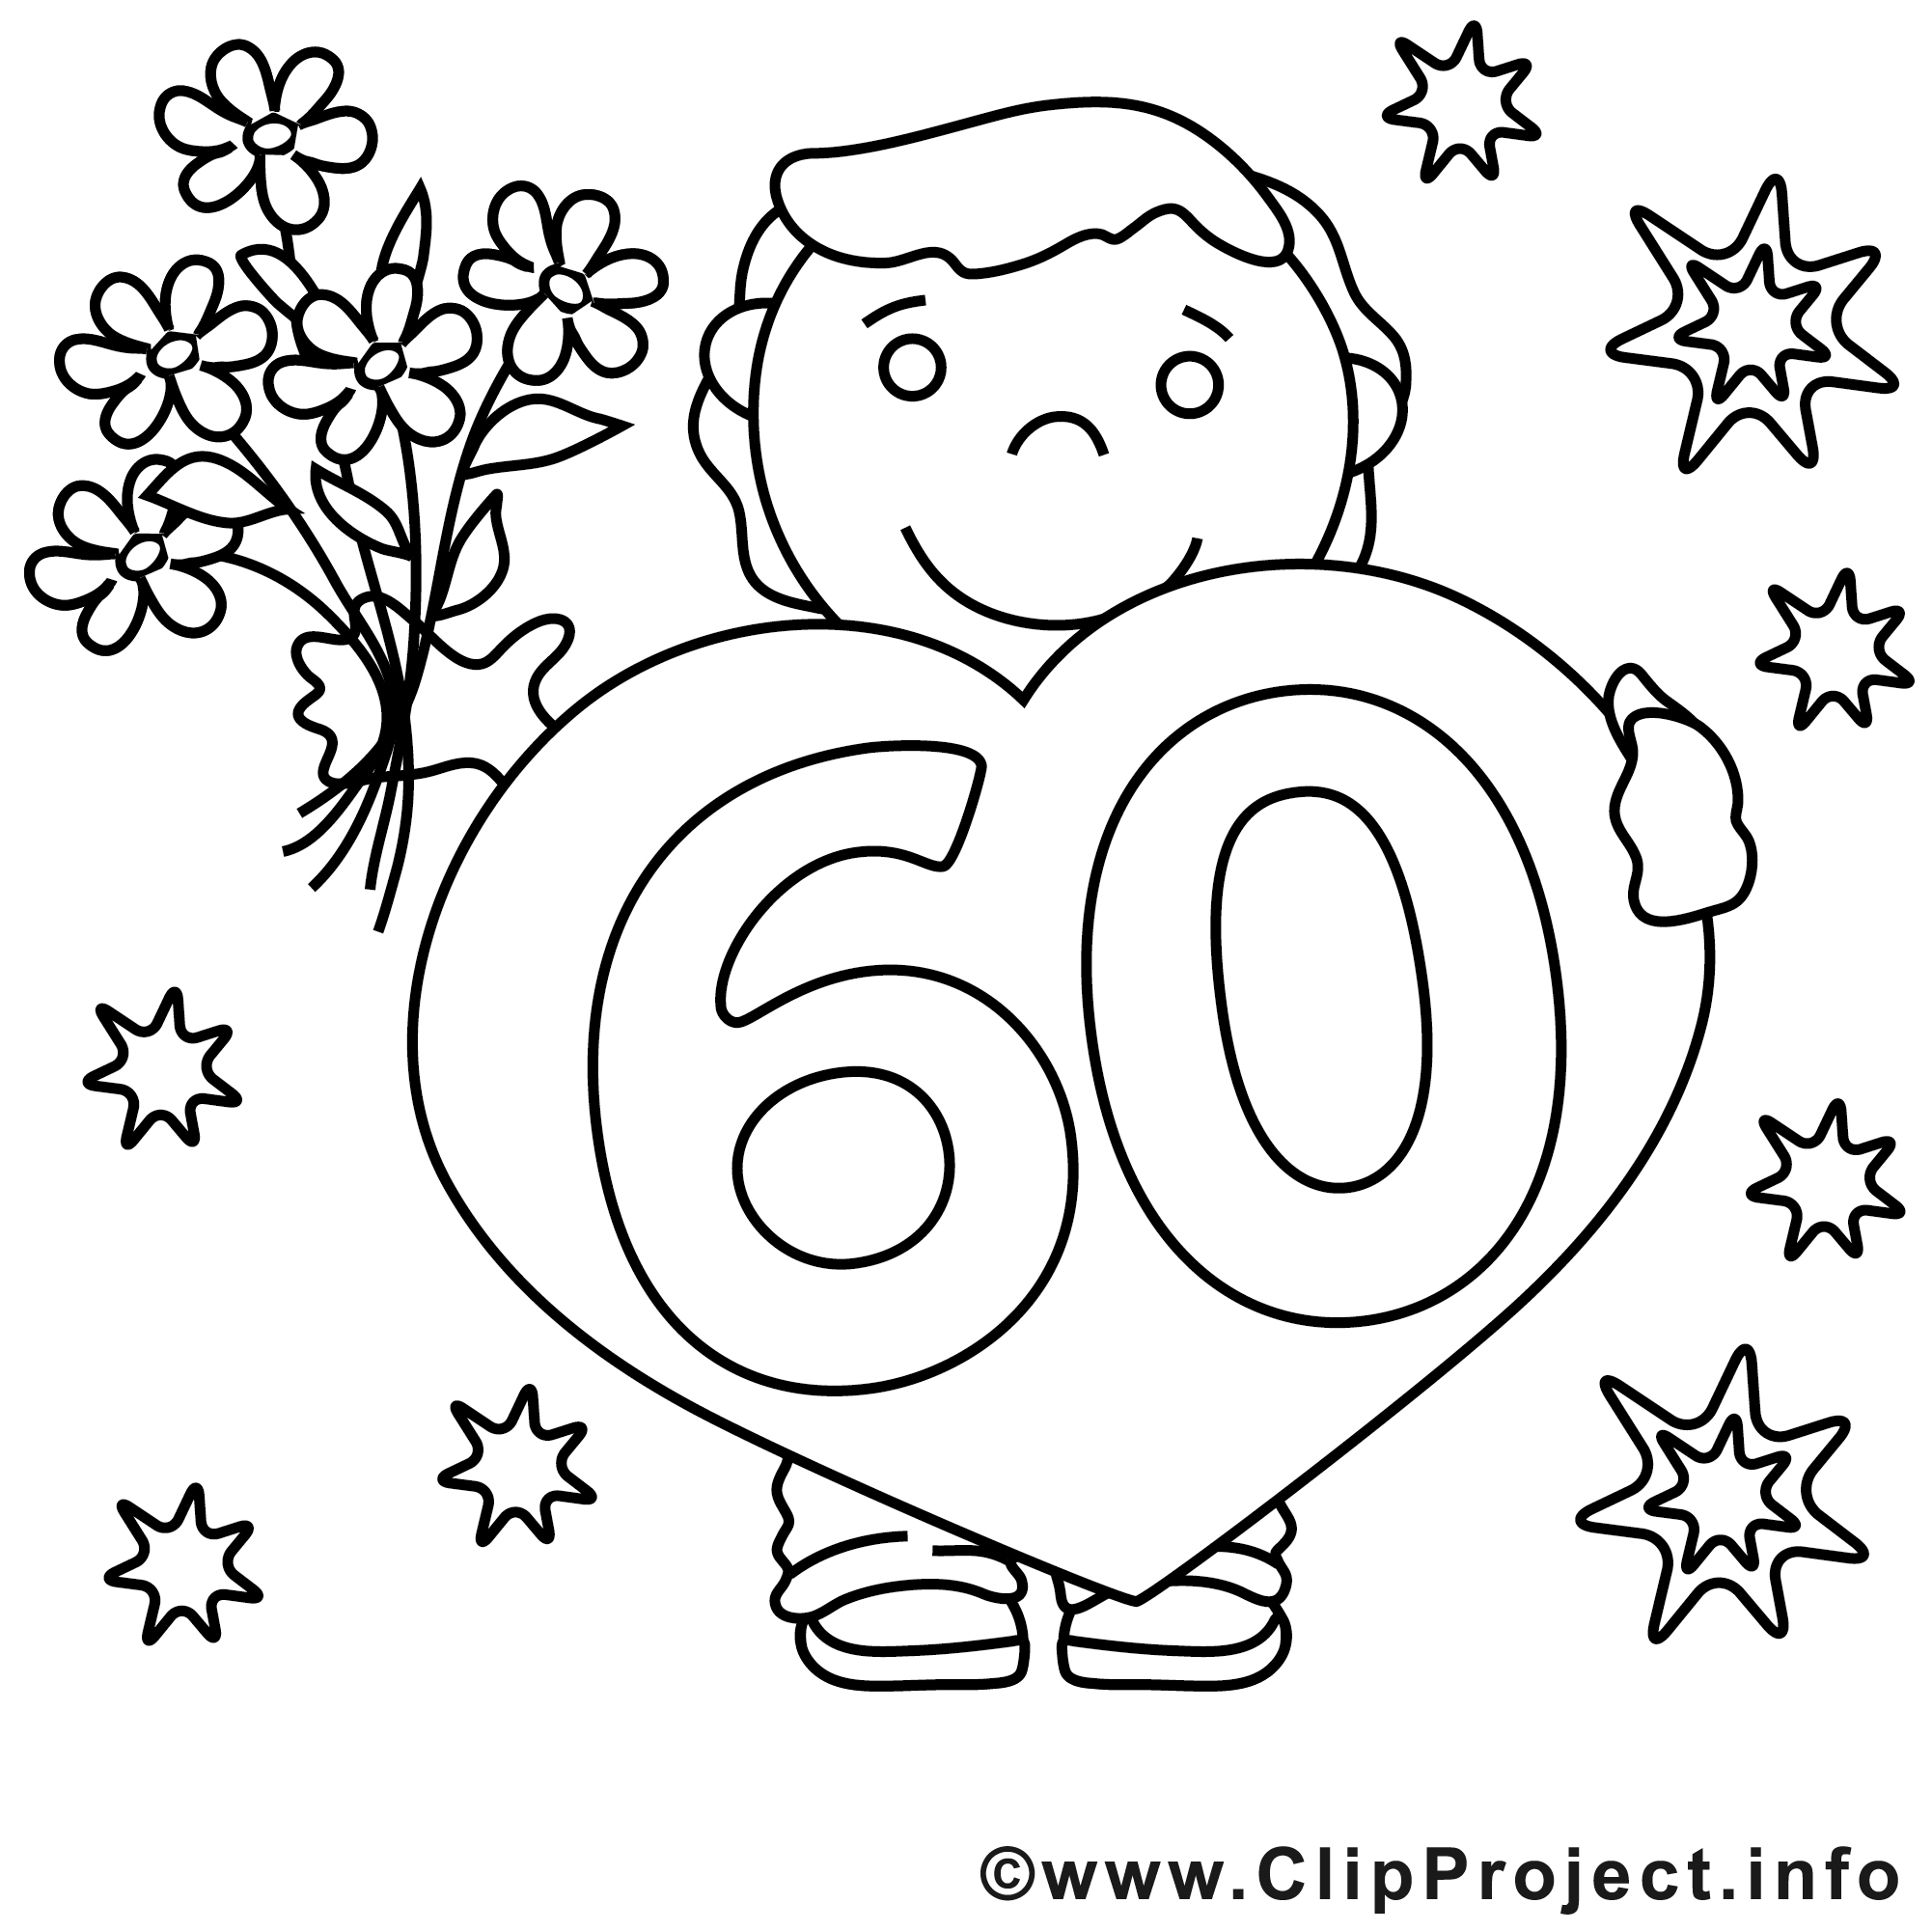 60 ans clip art gratuit anniversaire imprimer. Black Bedroom Furniture Sets. Home Design Ideas